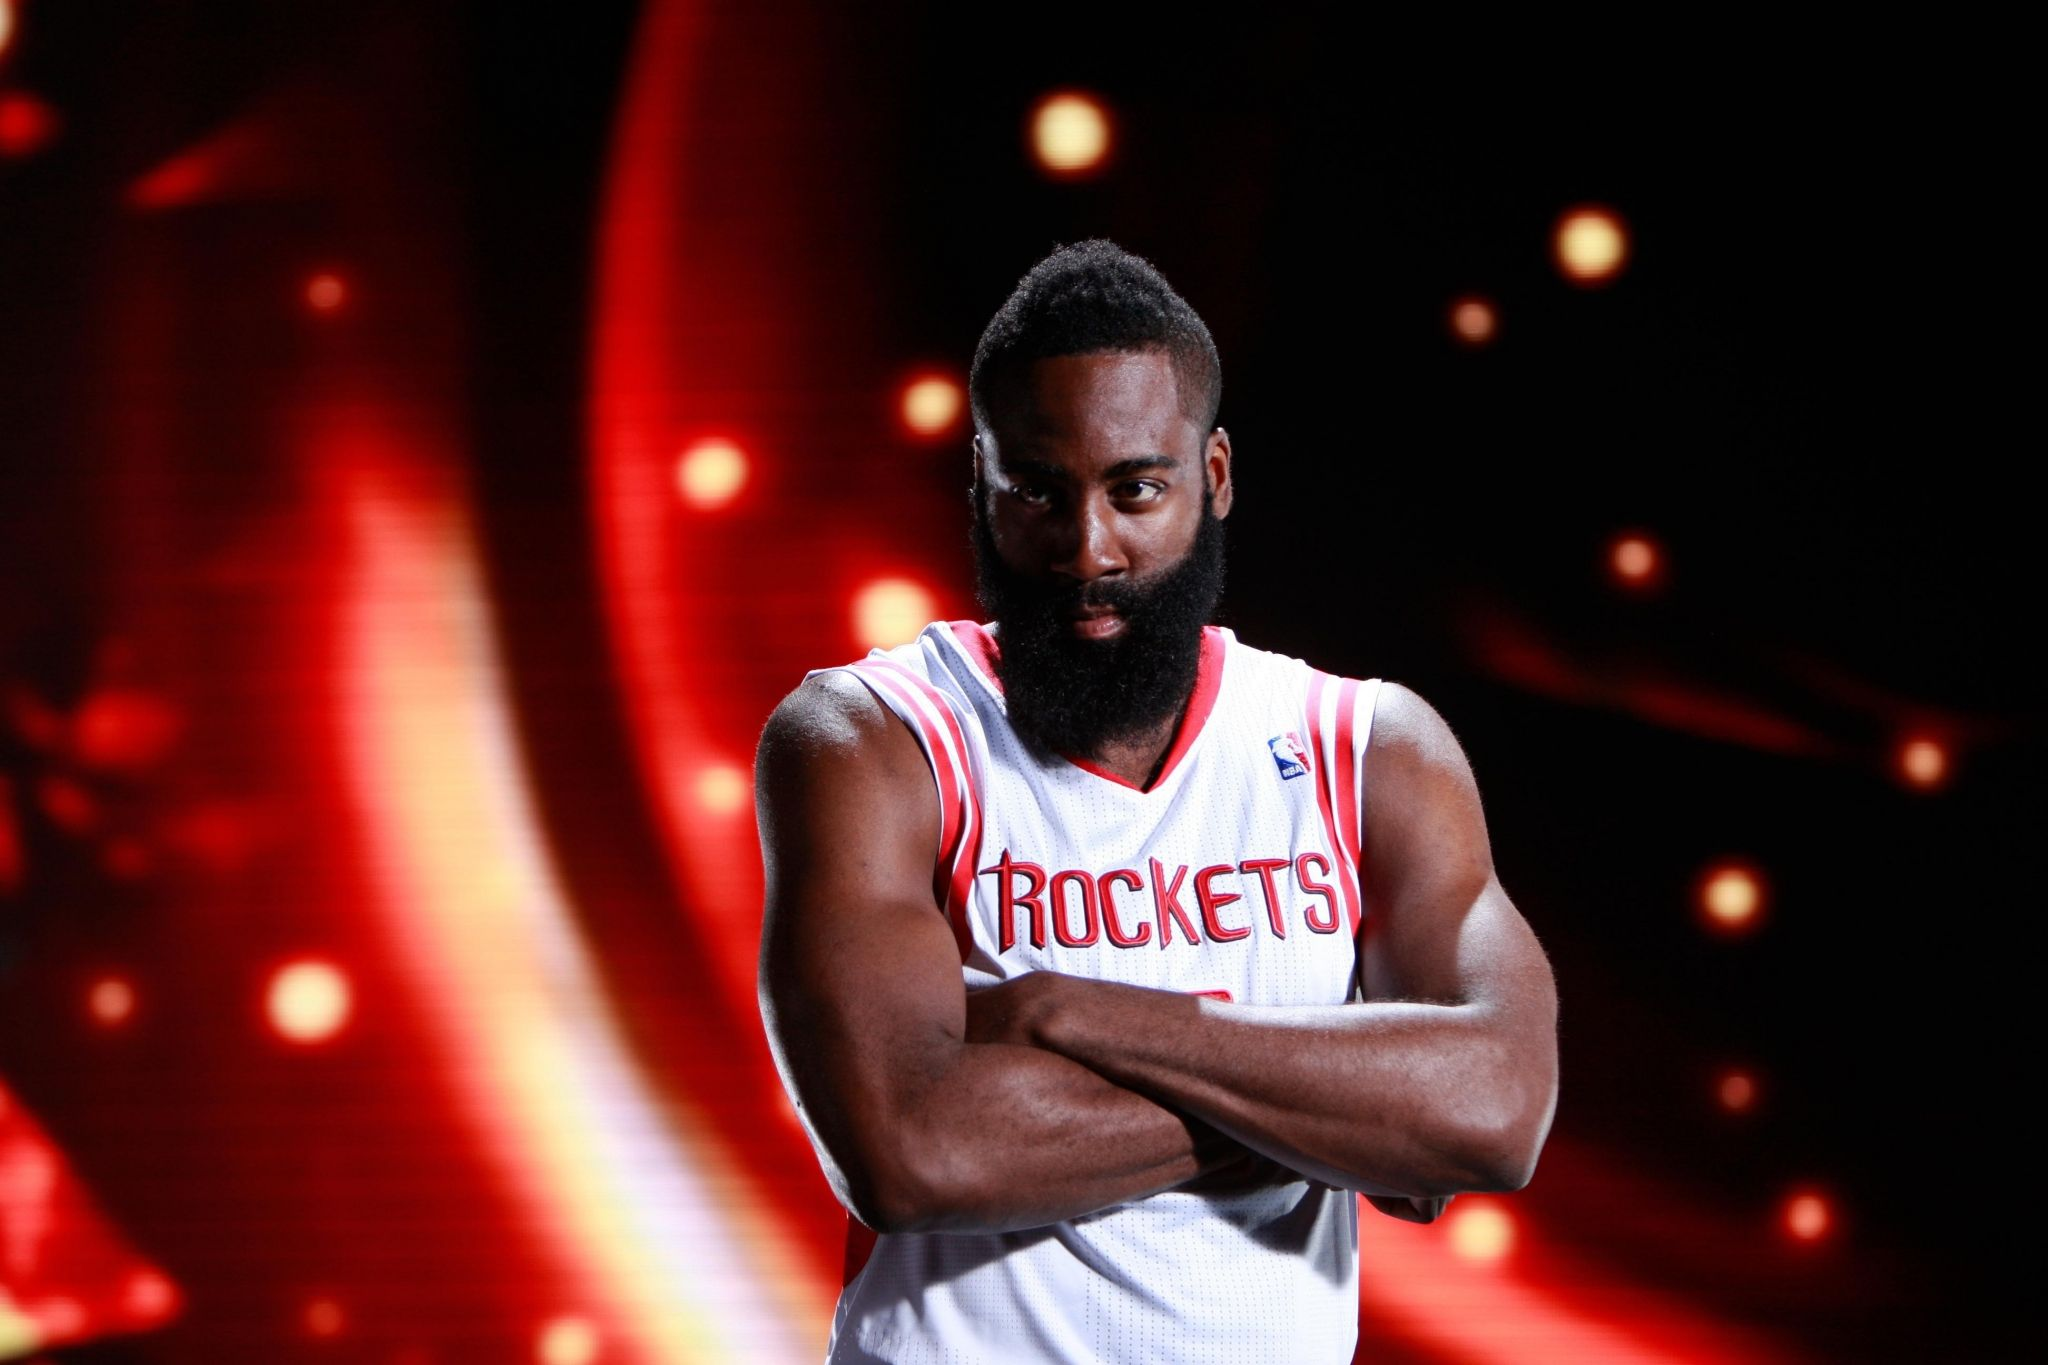 james harden wallpaper pack 1080p hd(画像あり)